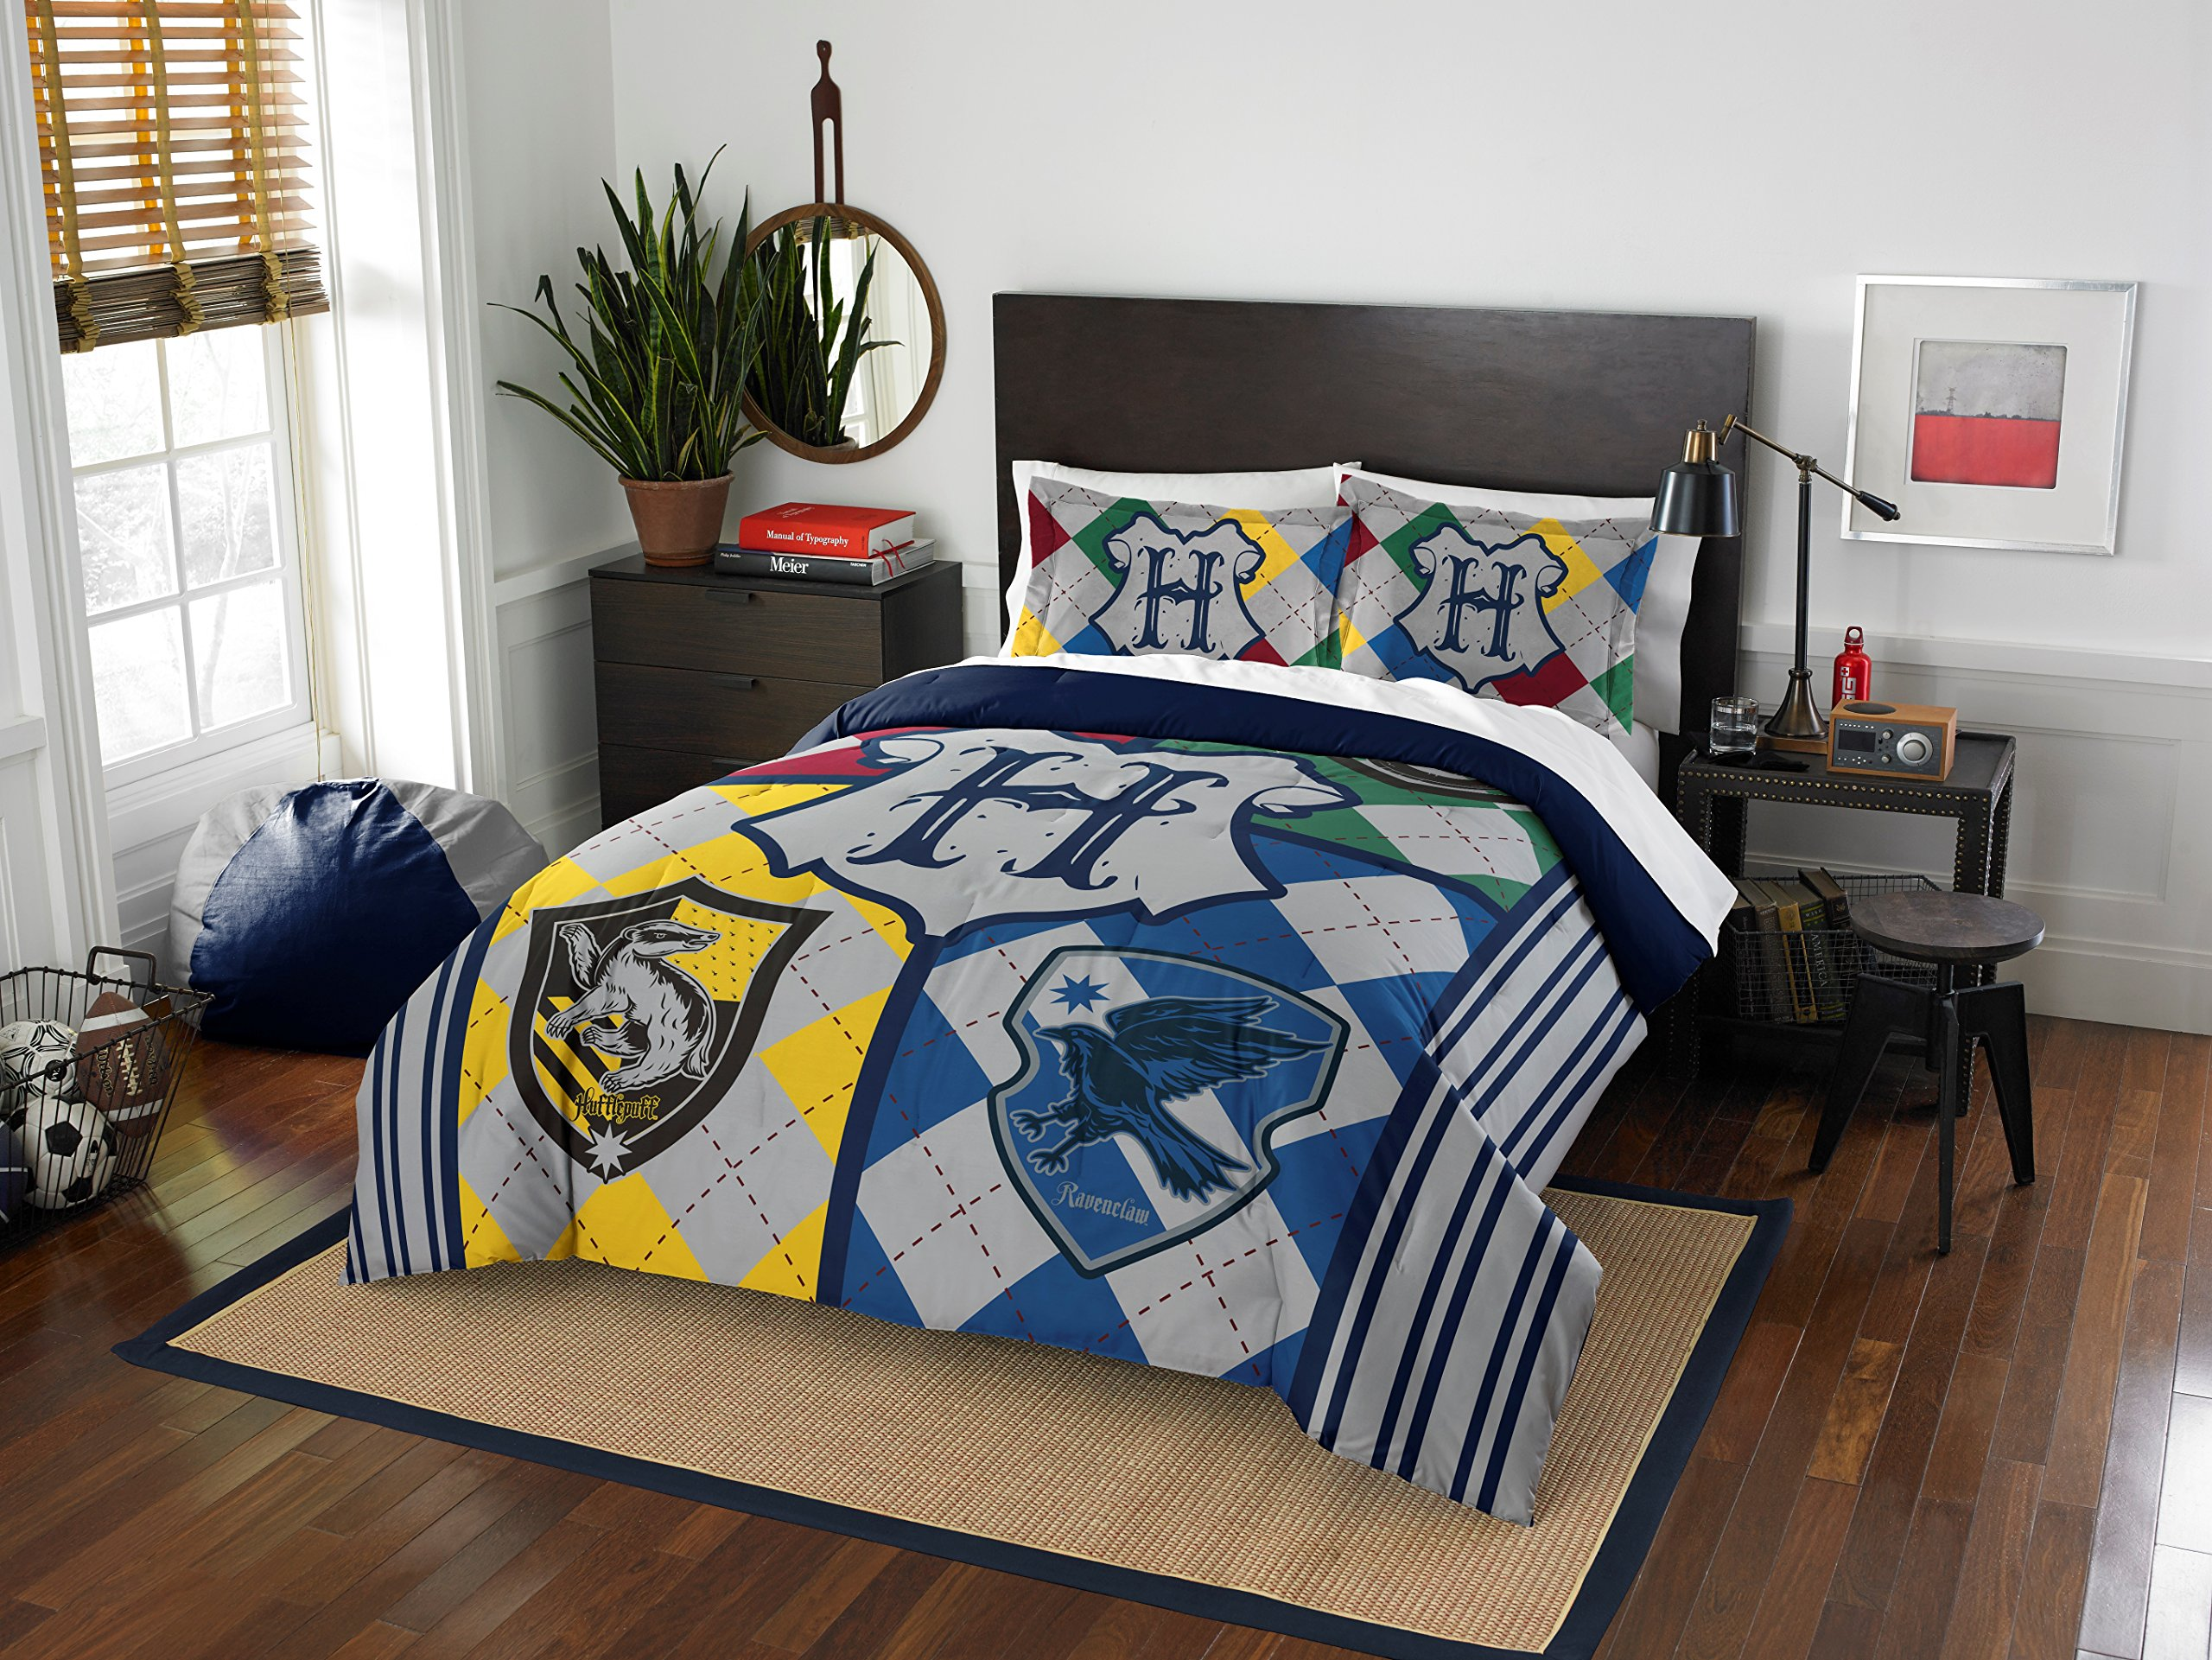 LO 3 Piece Kids Yellow Blue Red Grey Harry Potter Themed Comforter Full Queen Set, Hogwarts Pattern Bedding for HP Fans Merchandise Fan Gear Stripes Crow Movie Series Decor, Polyester